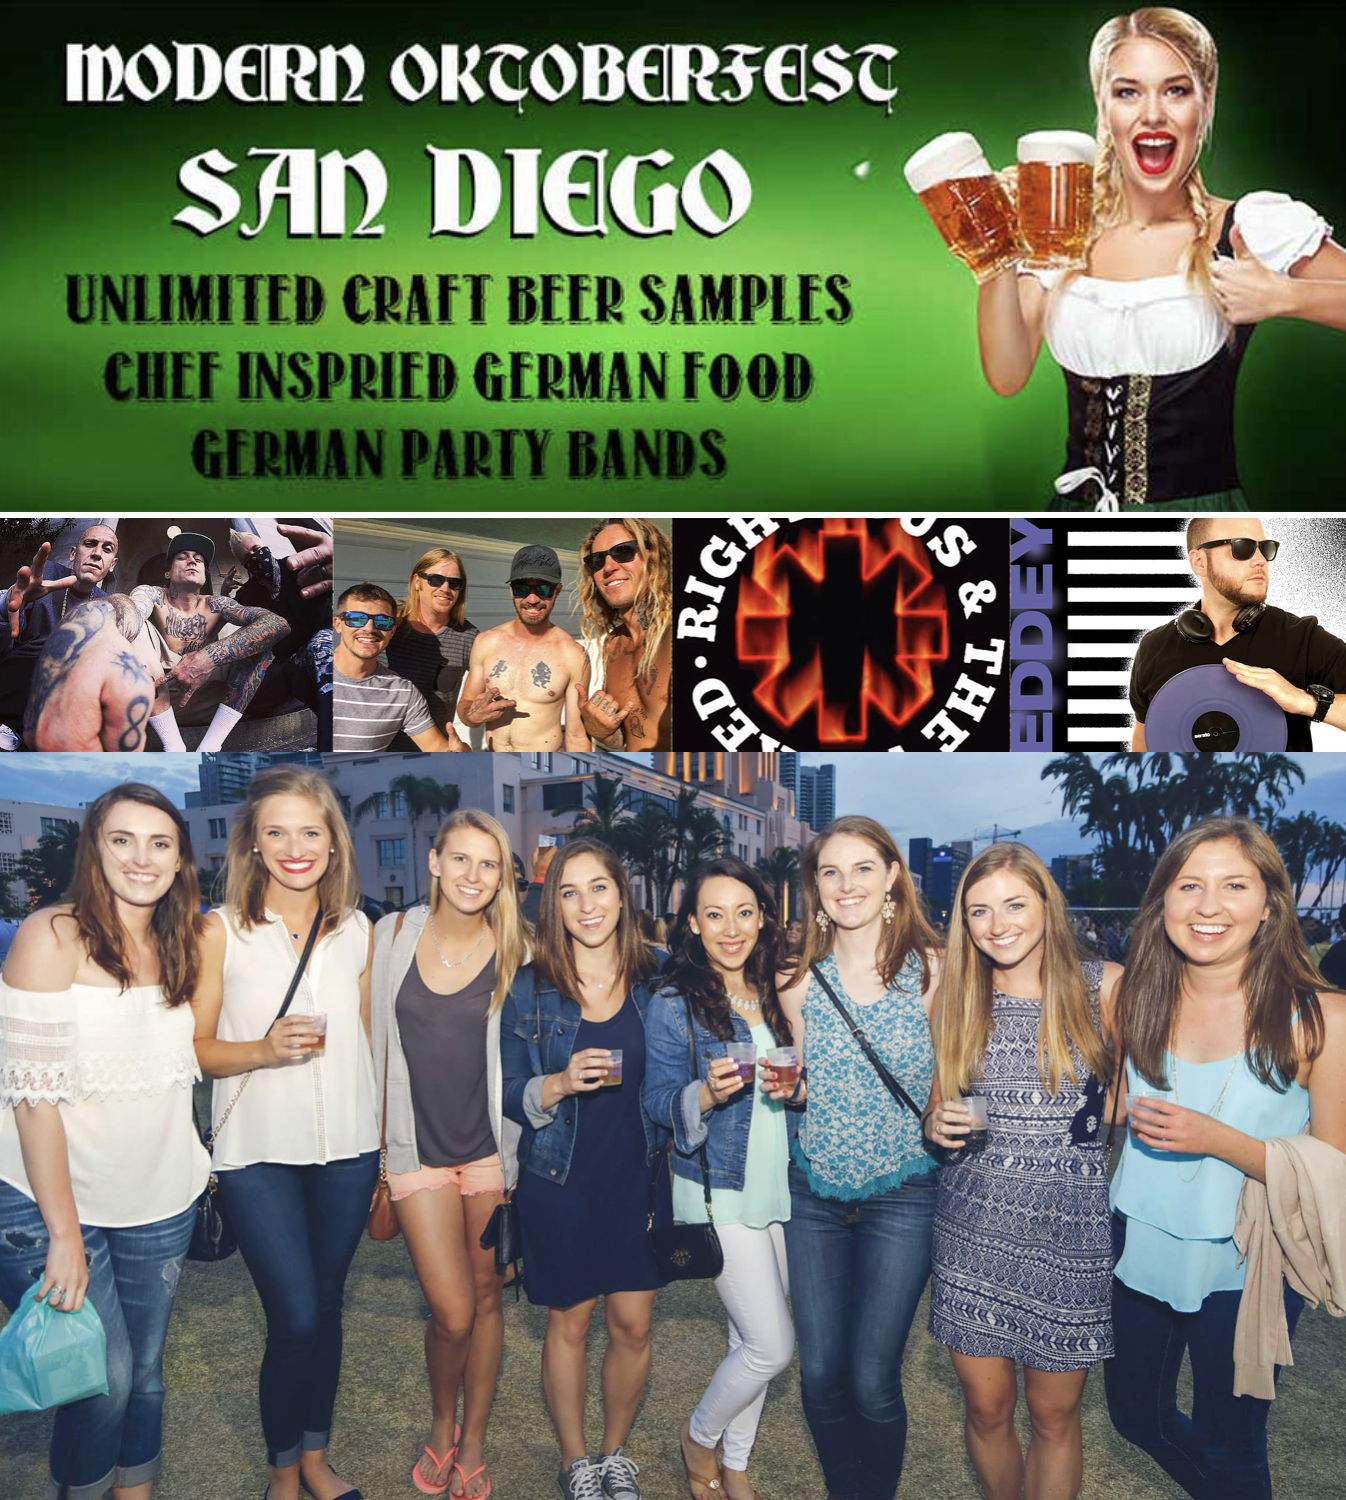 Save on passes & Enter to win VIP tickets to San Diego Oktoberfest - October 14!